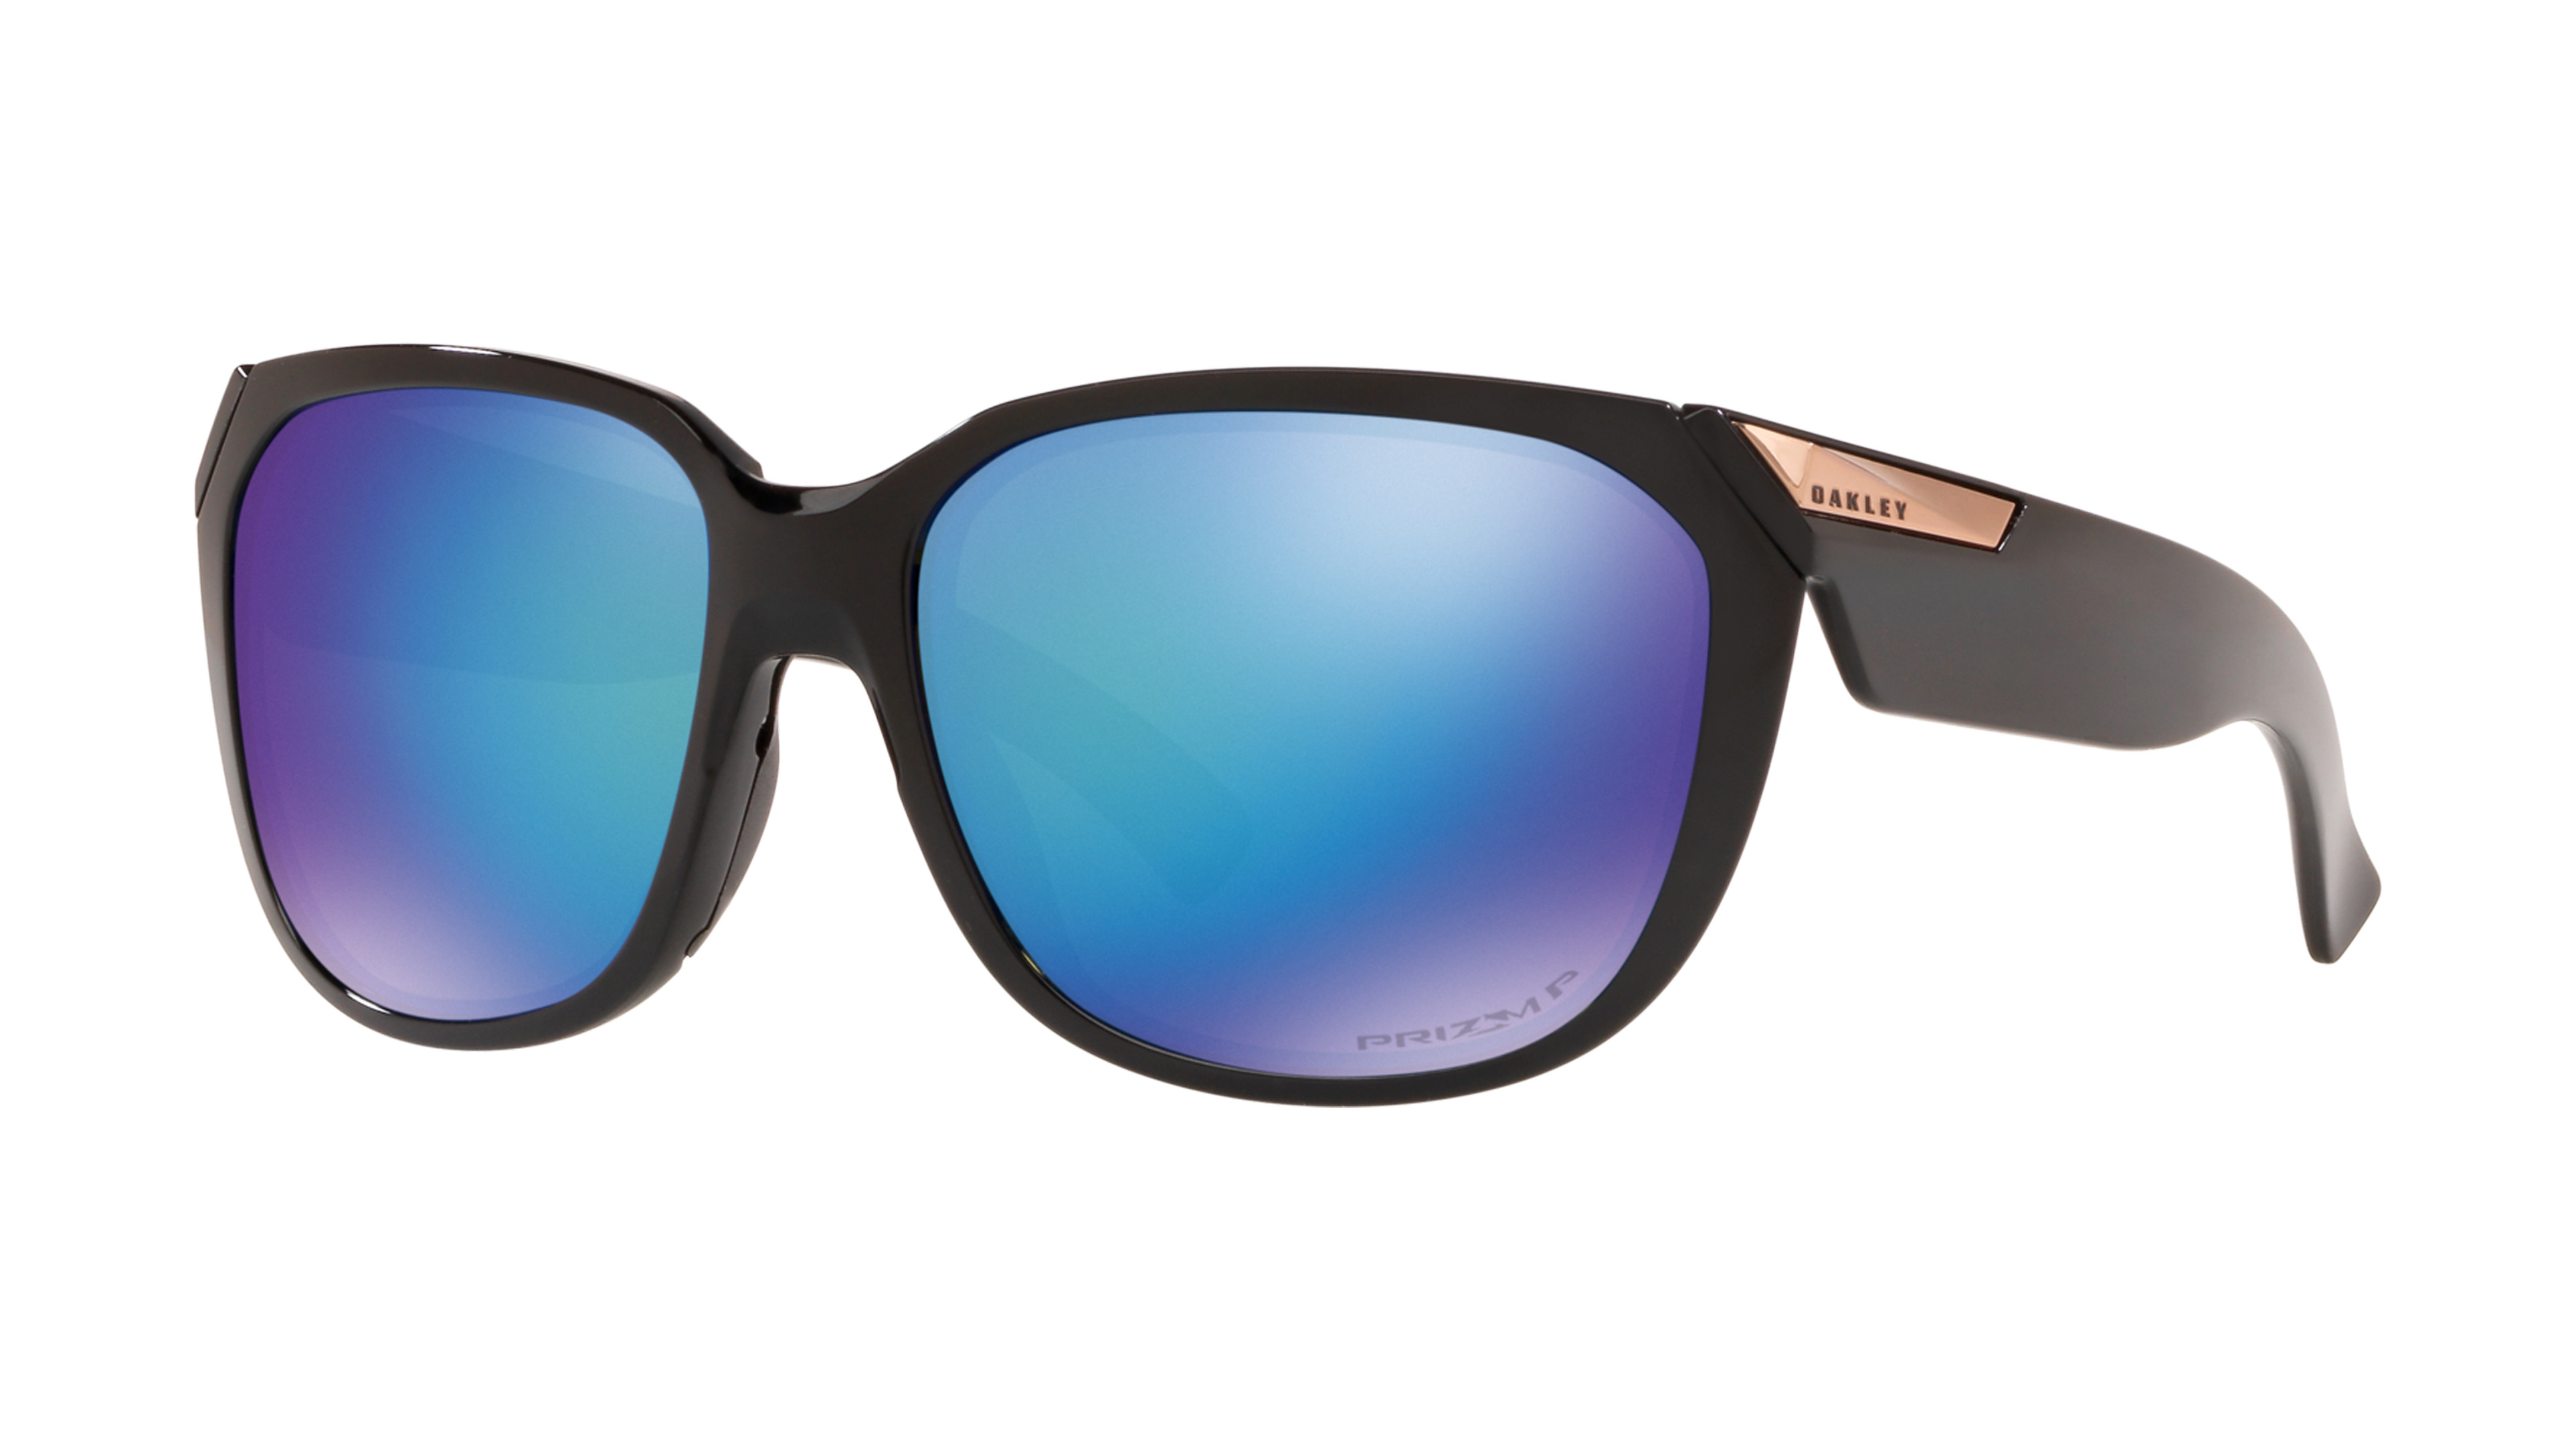 0888392473684-angle-oakley-sonnenbrille-rev_up-0OO9432-943211